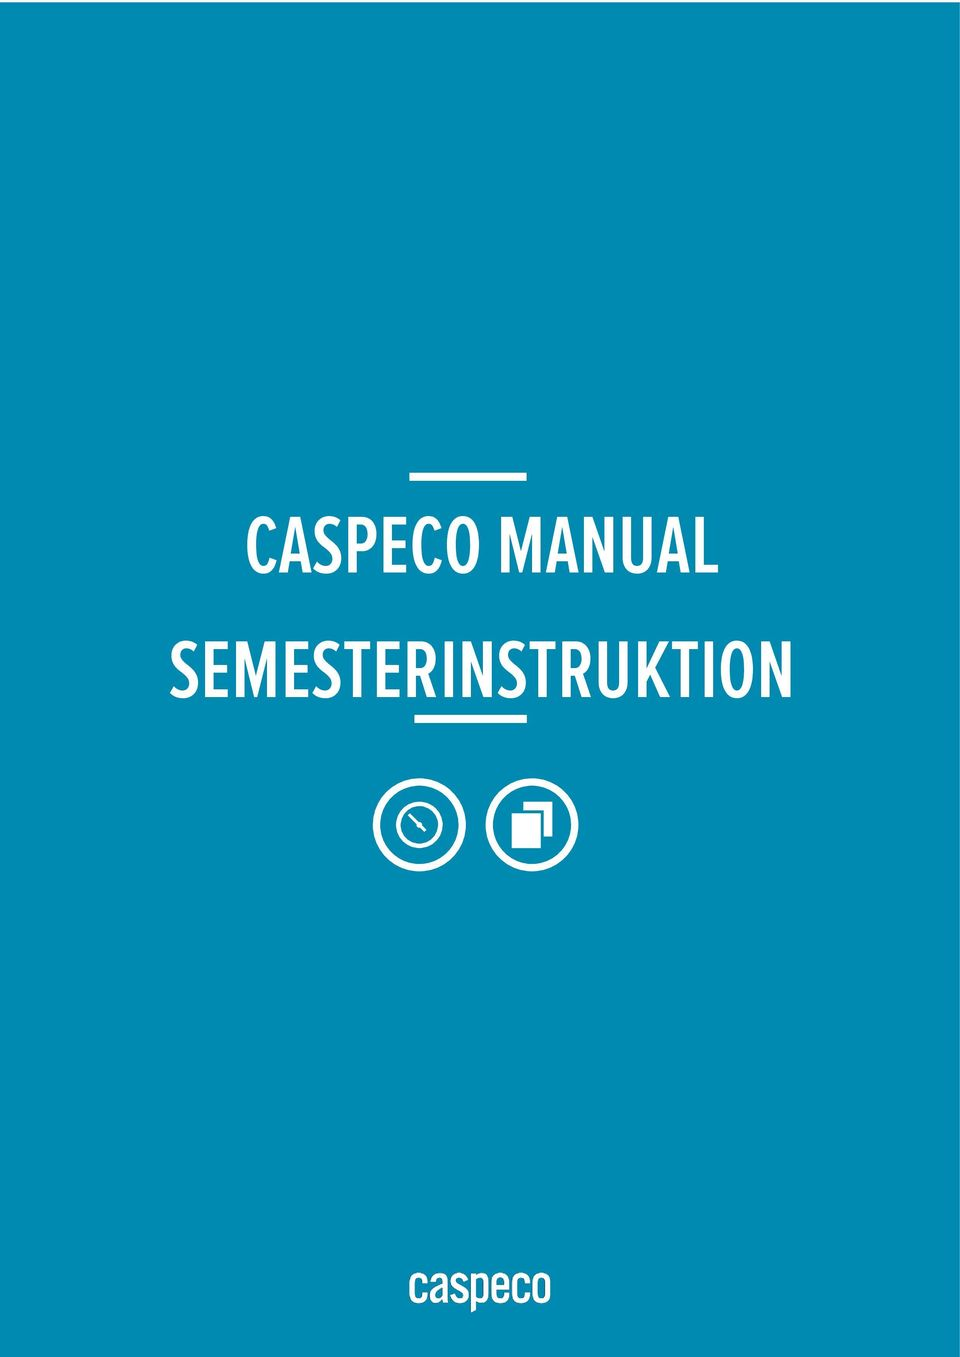 MANUAL SEMESTERINSTRUKTION CASPECO MANUAL